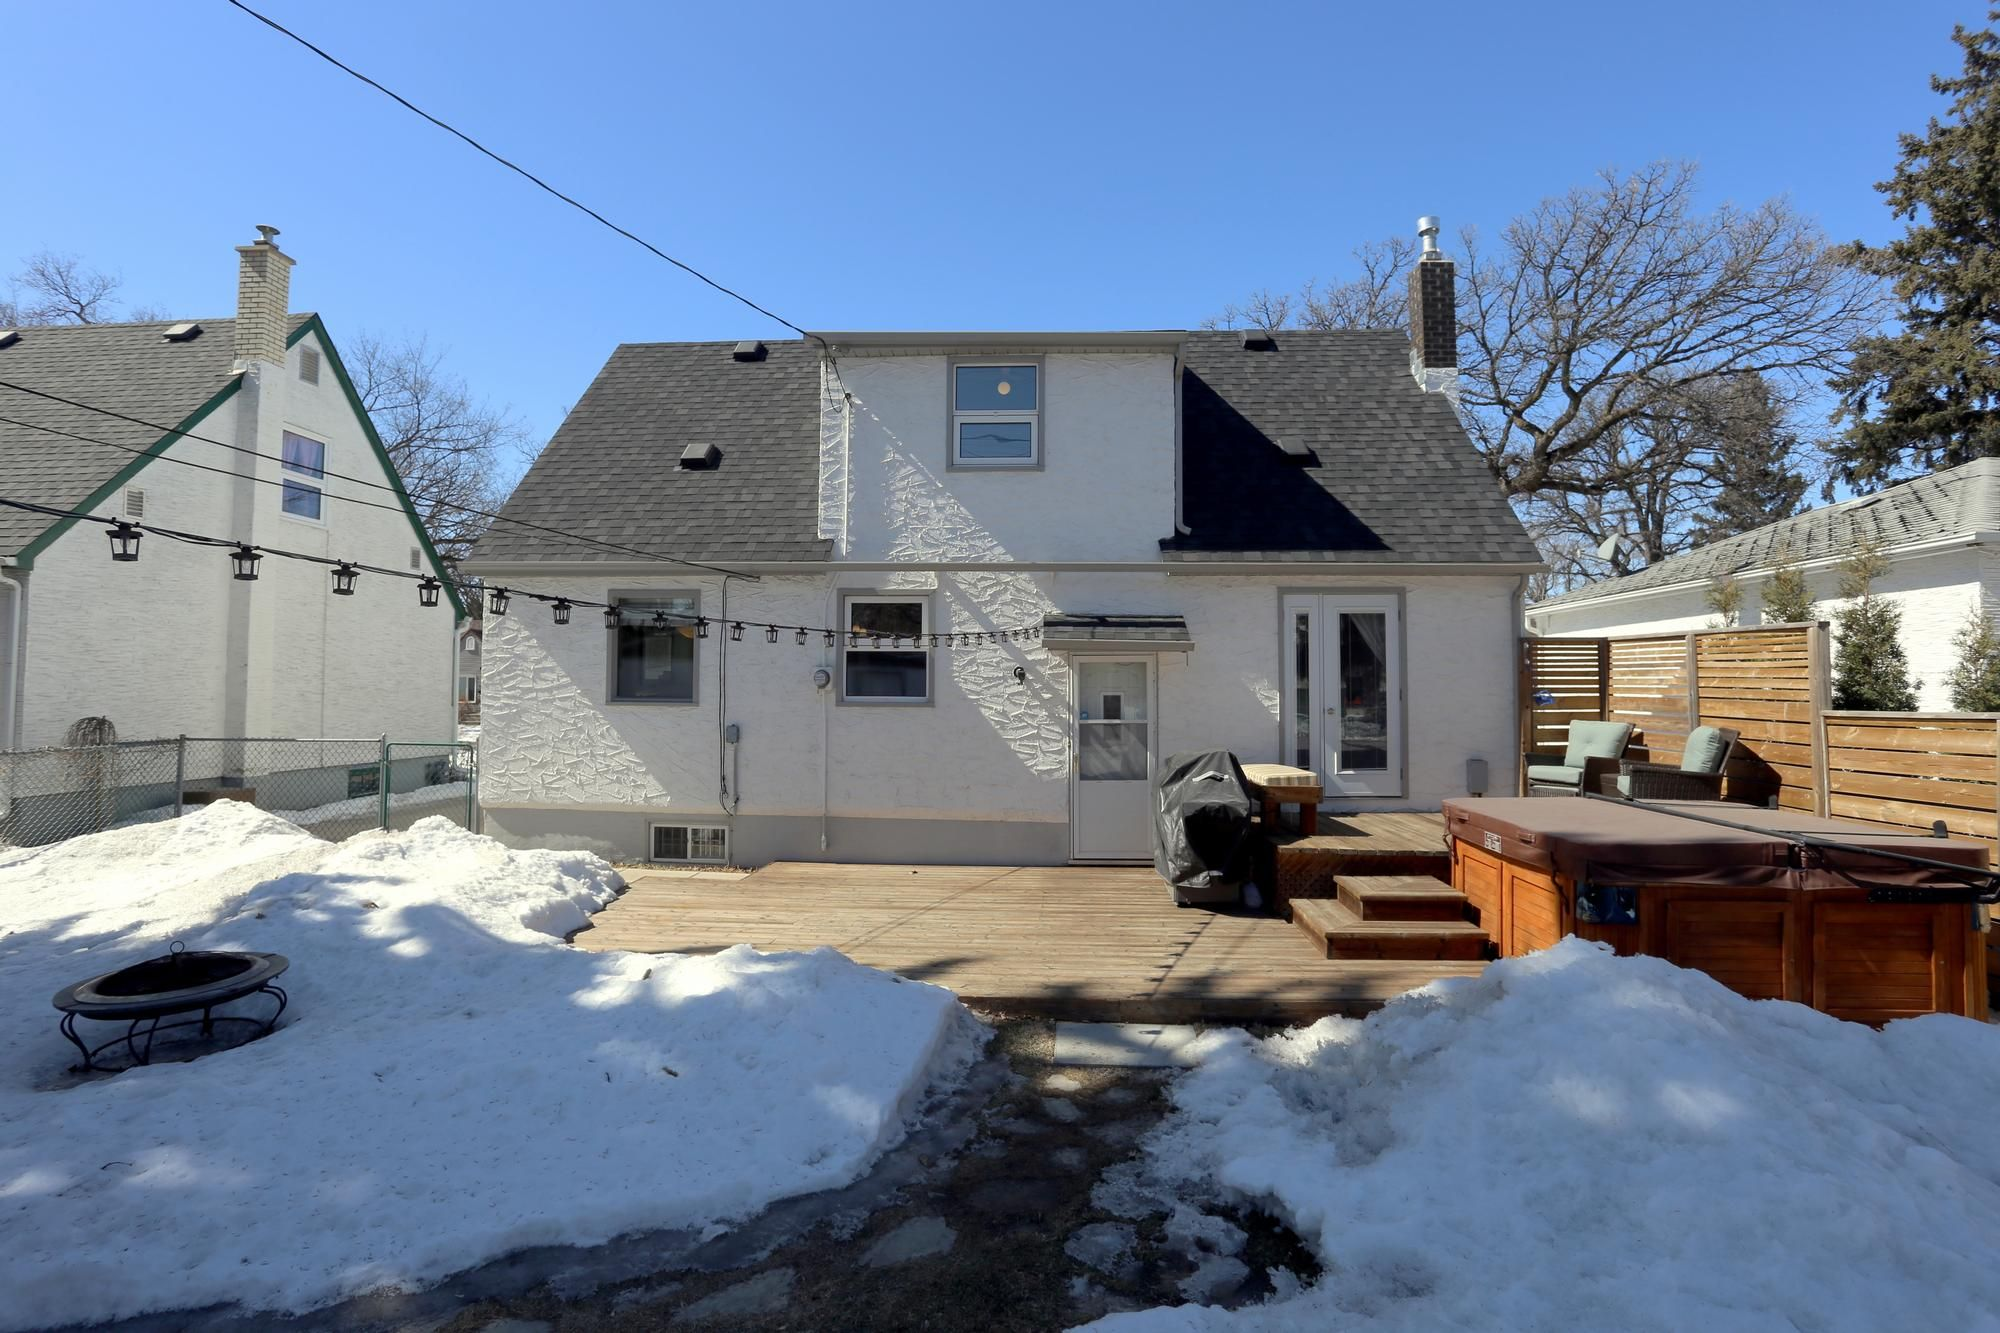 Photo 32: Photos: 349 Guildford Street in Winnipeg: St James Single Family Detached for sale (5E)  : MLS®# 1807654